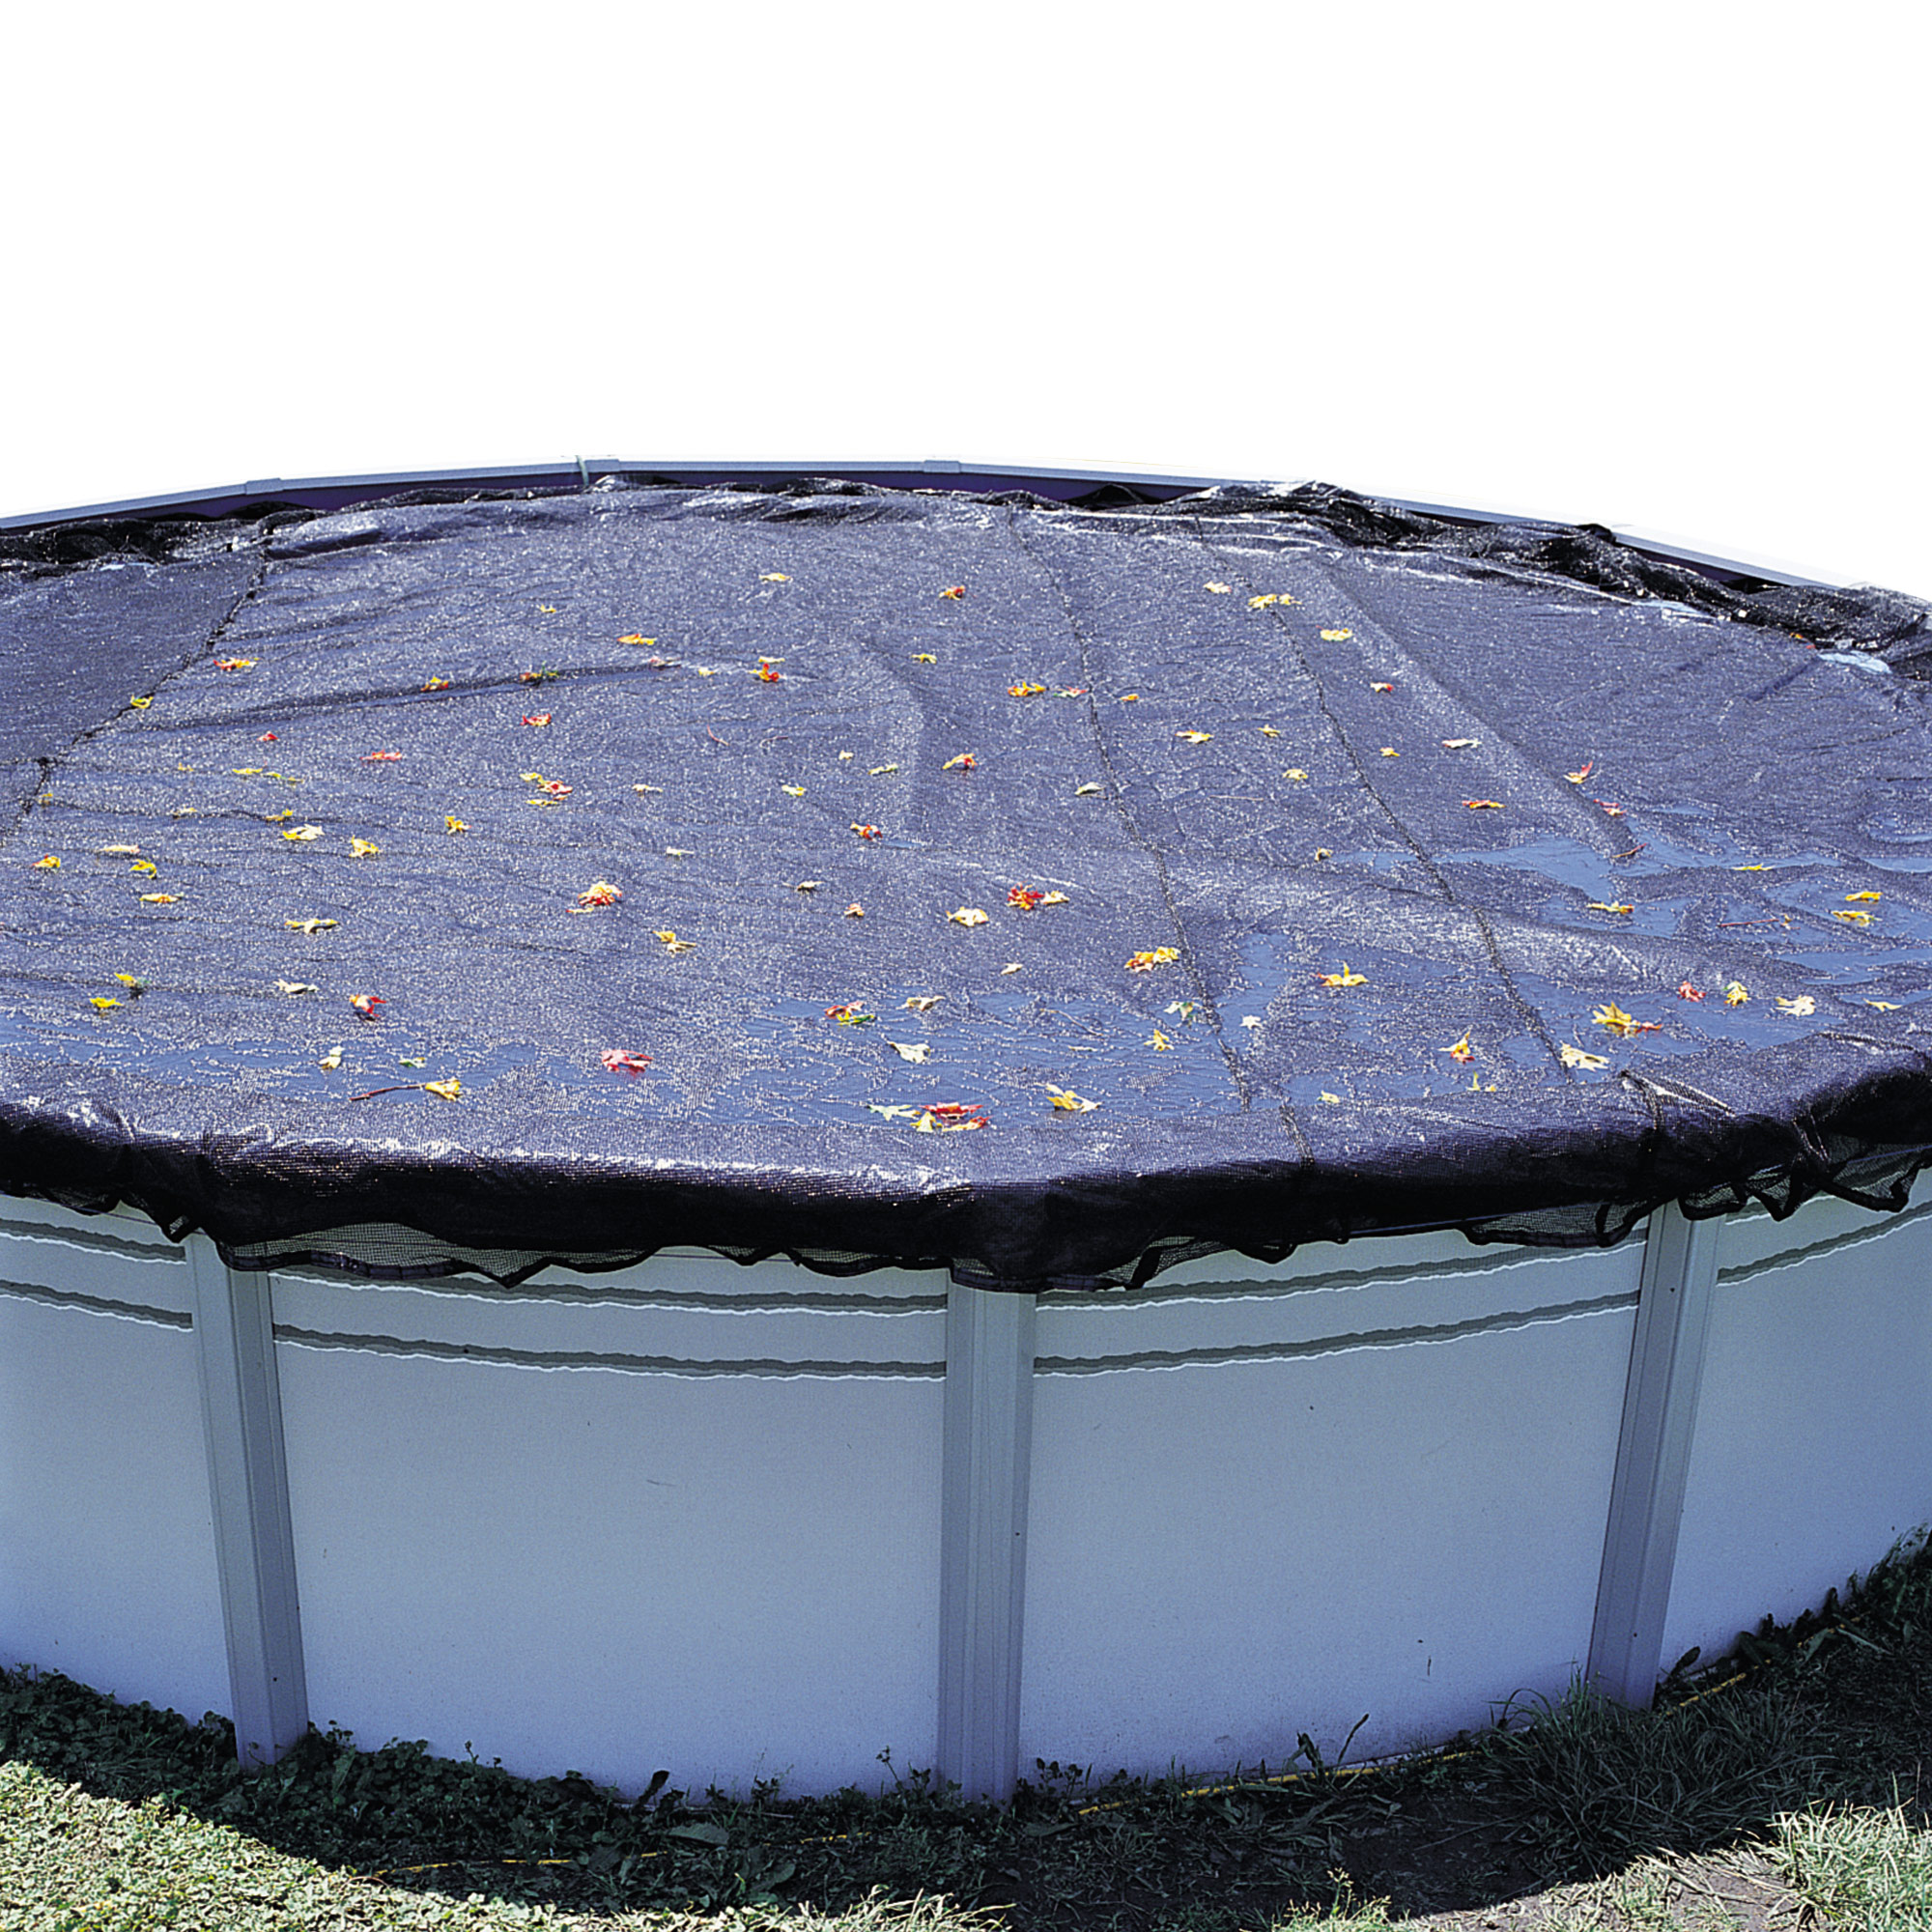 15 x 30 ft Oval Above Ground Pool Leaf Cover